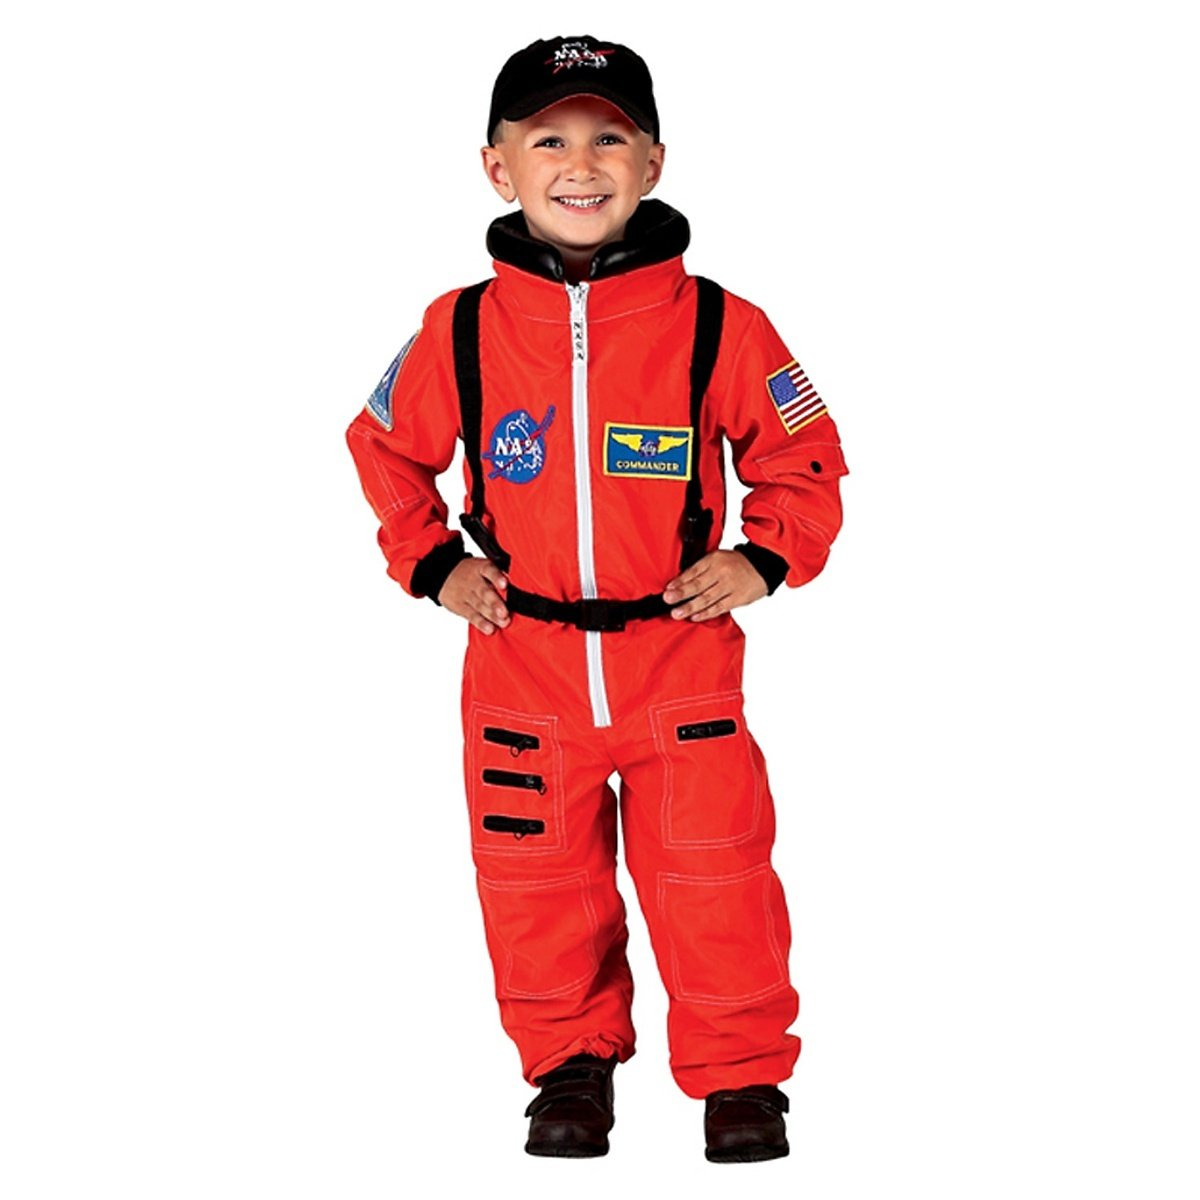 Image result for kid in space suit nasa